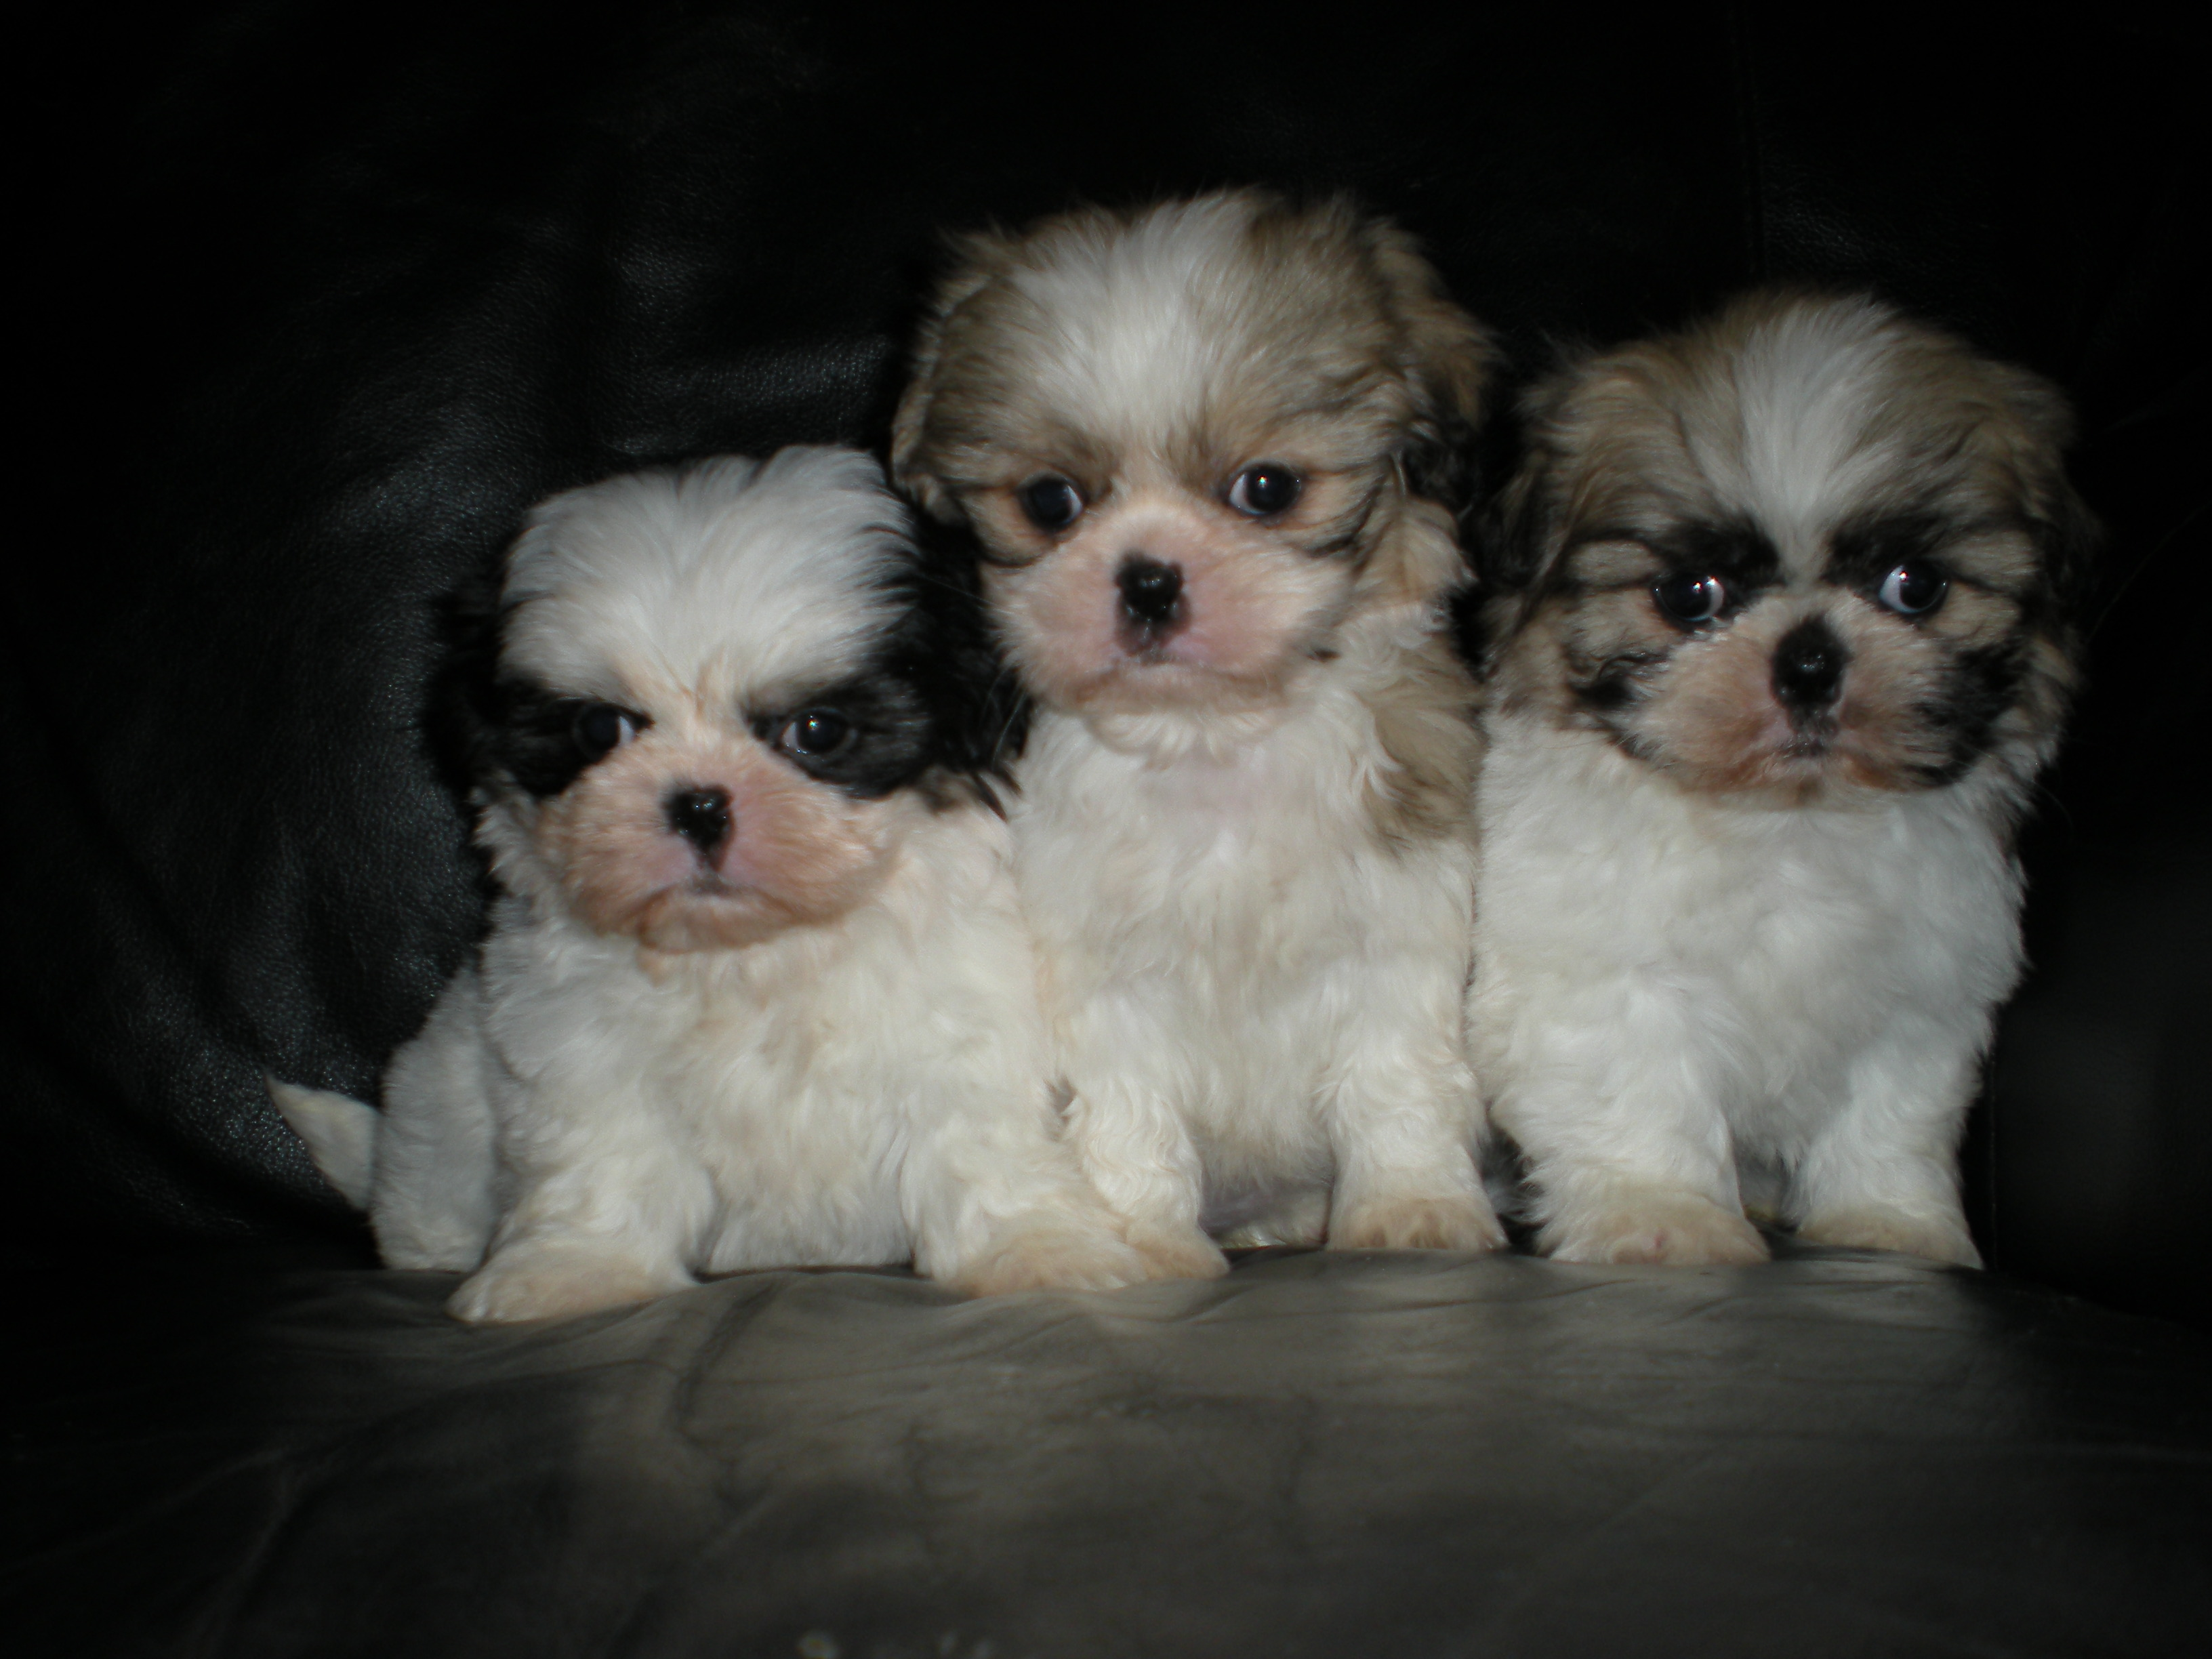 Shih-Tzu Puppies - Dogs For Sale in banbridge